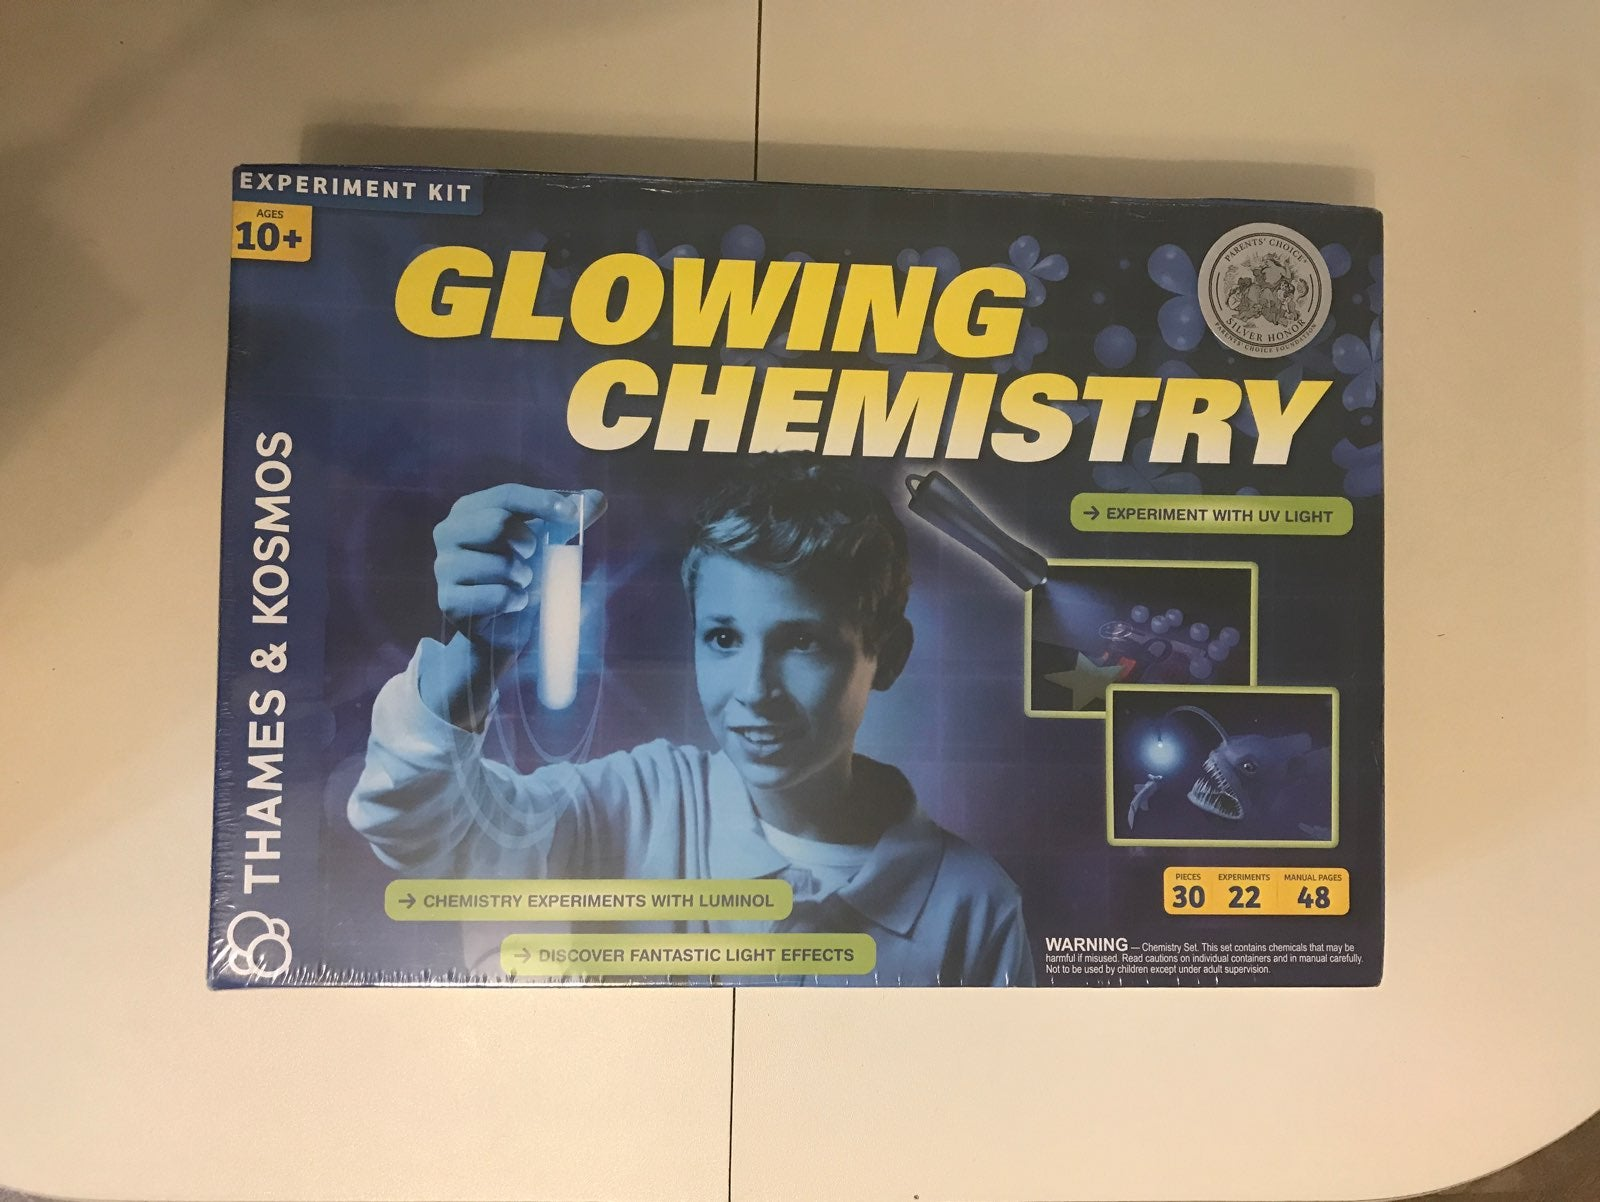 Glowing Chemestry Experiment Kit